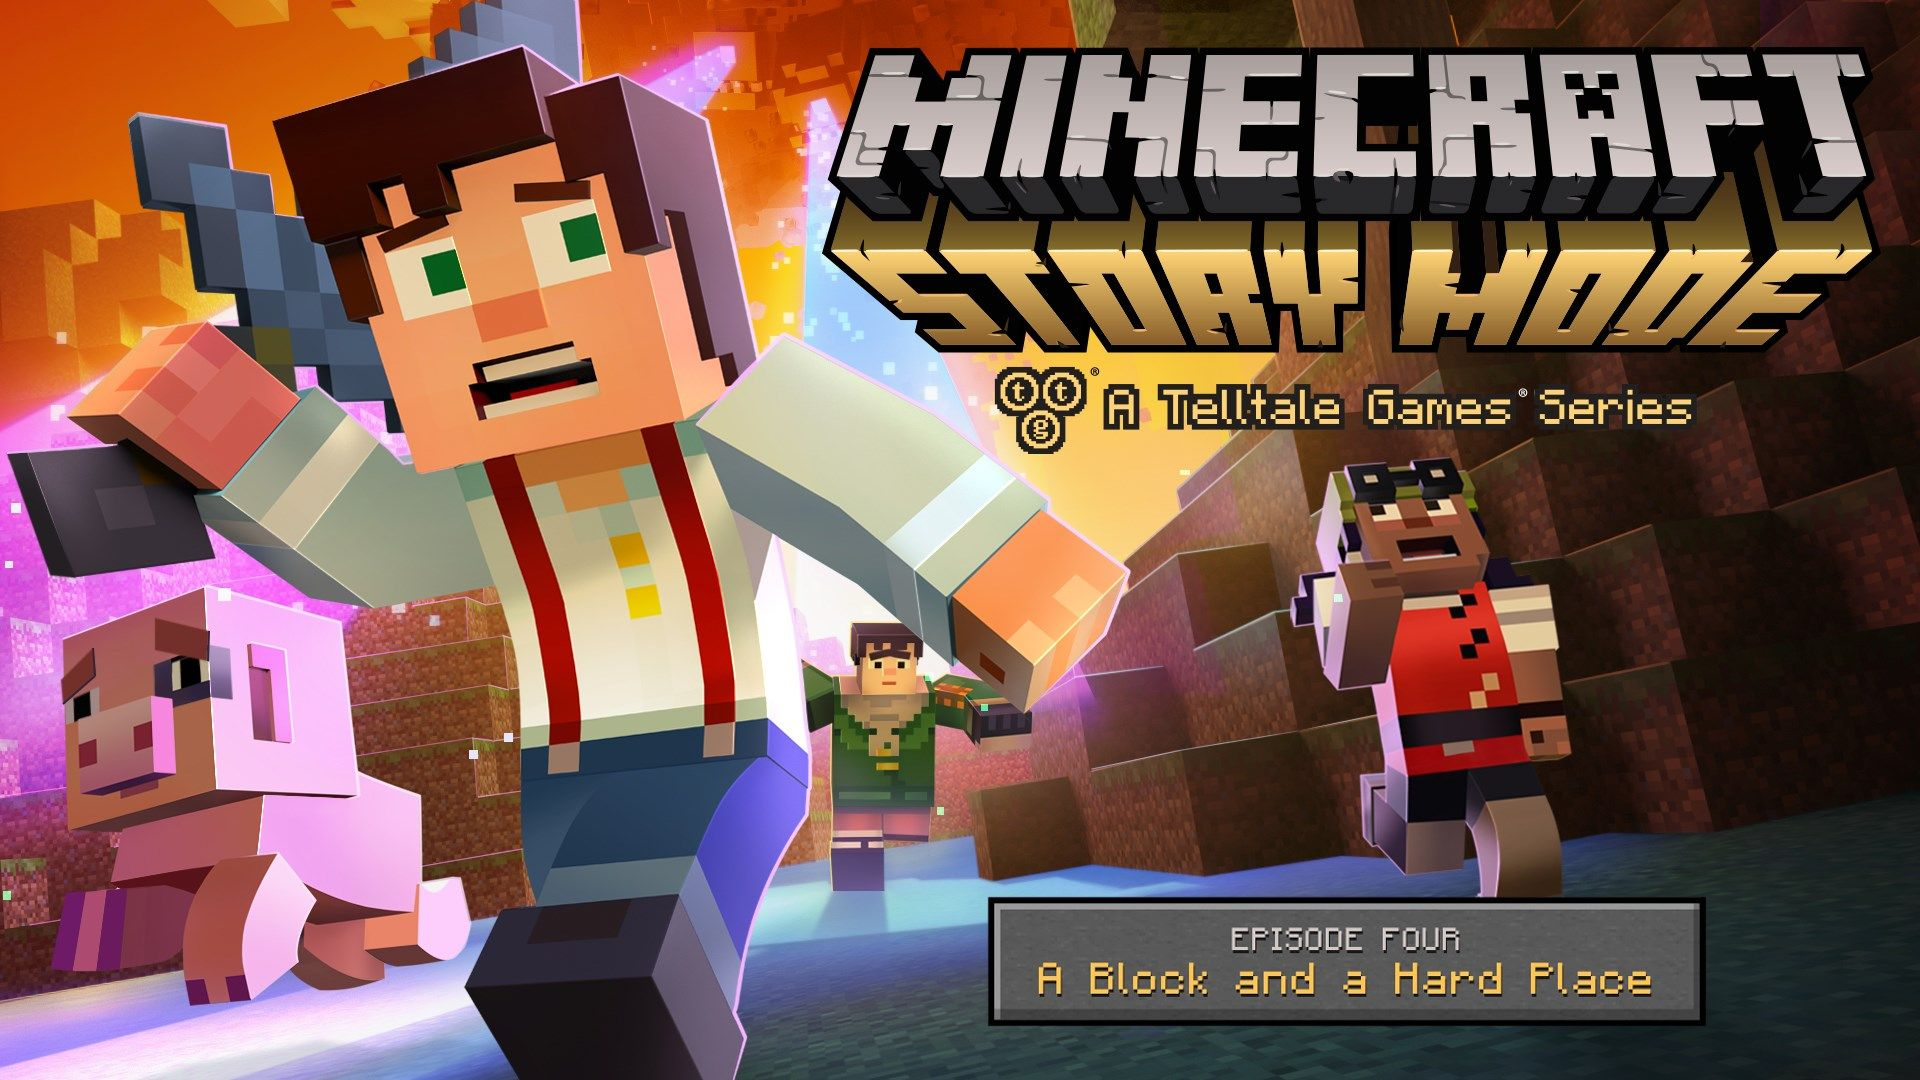 Great Wallpaper Minecraft Action - 932ea8dfaa880576273be4daf7e4326f  Best Photo Reference_48983.jpg